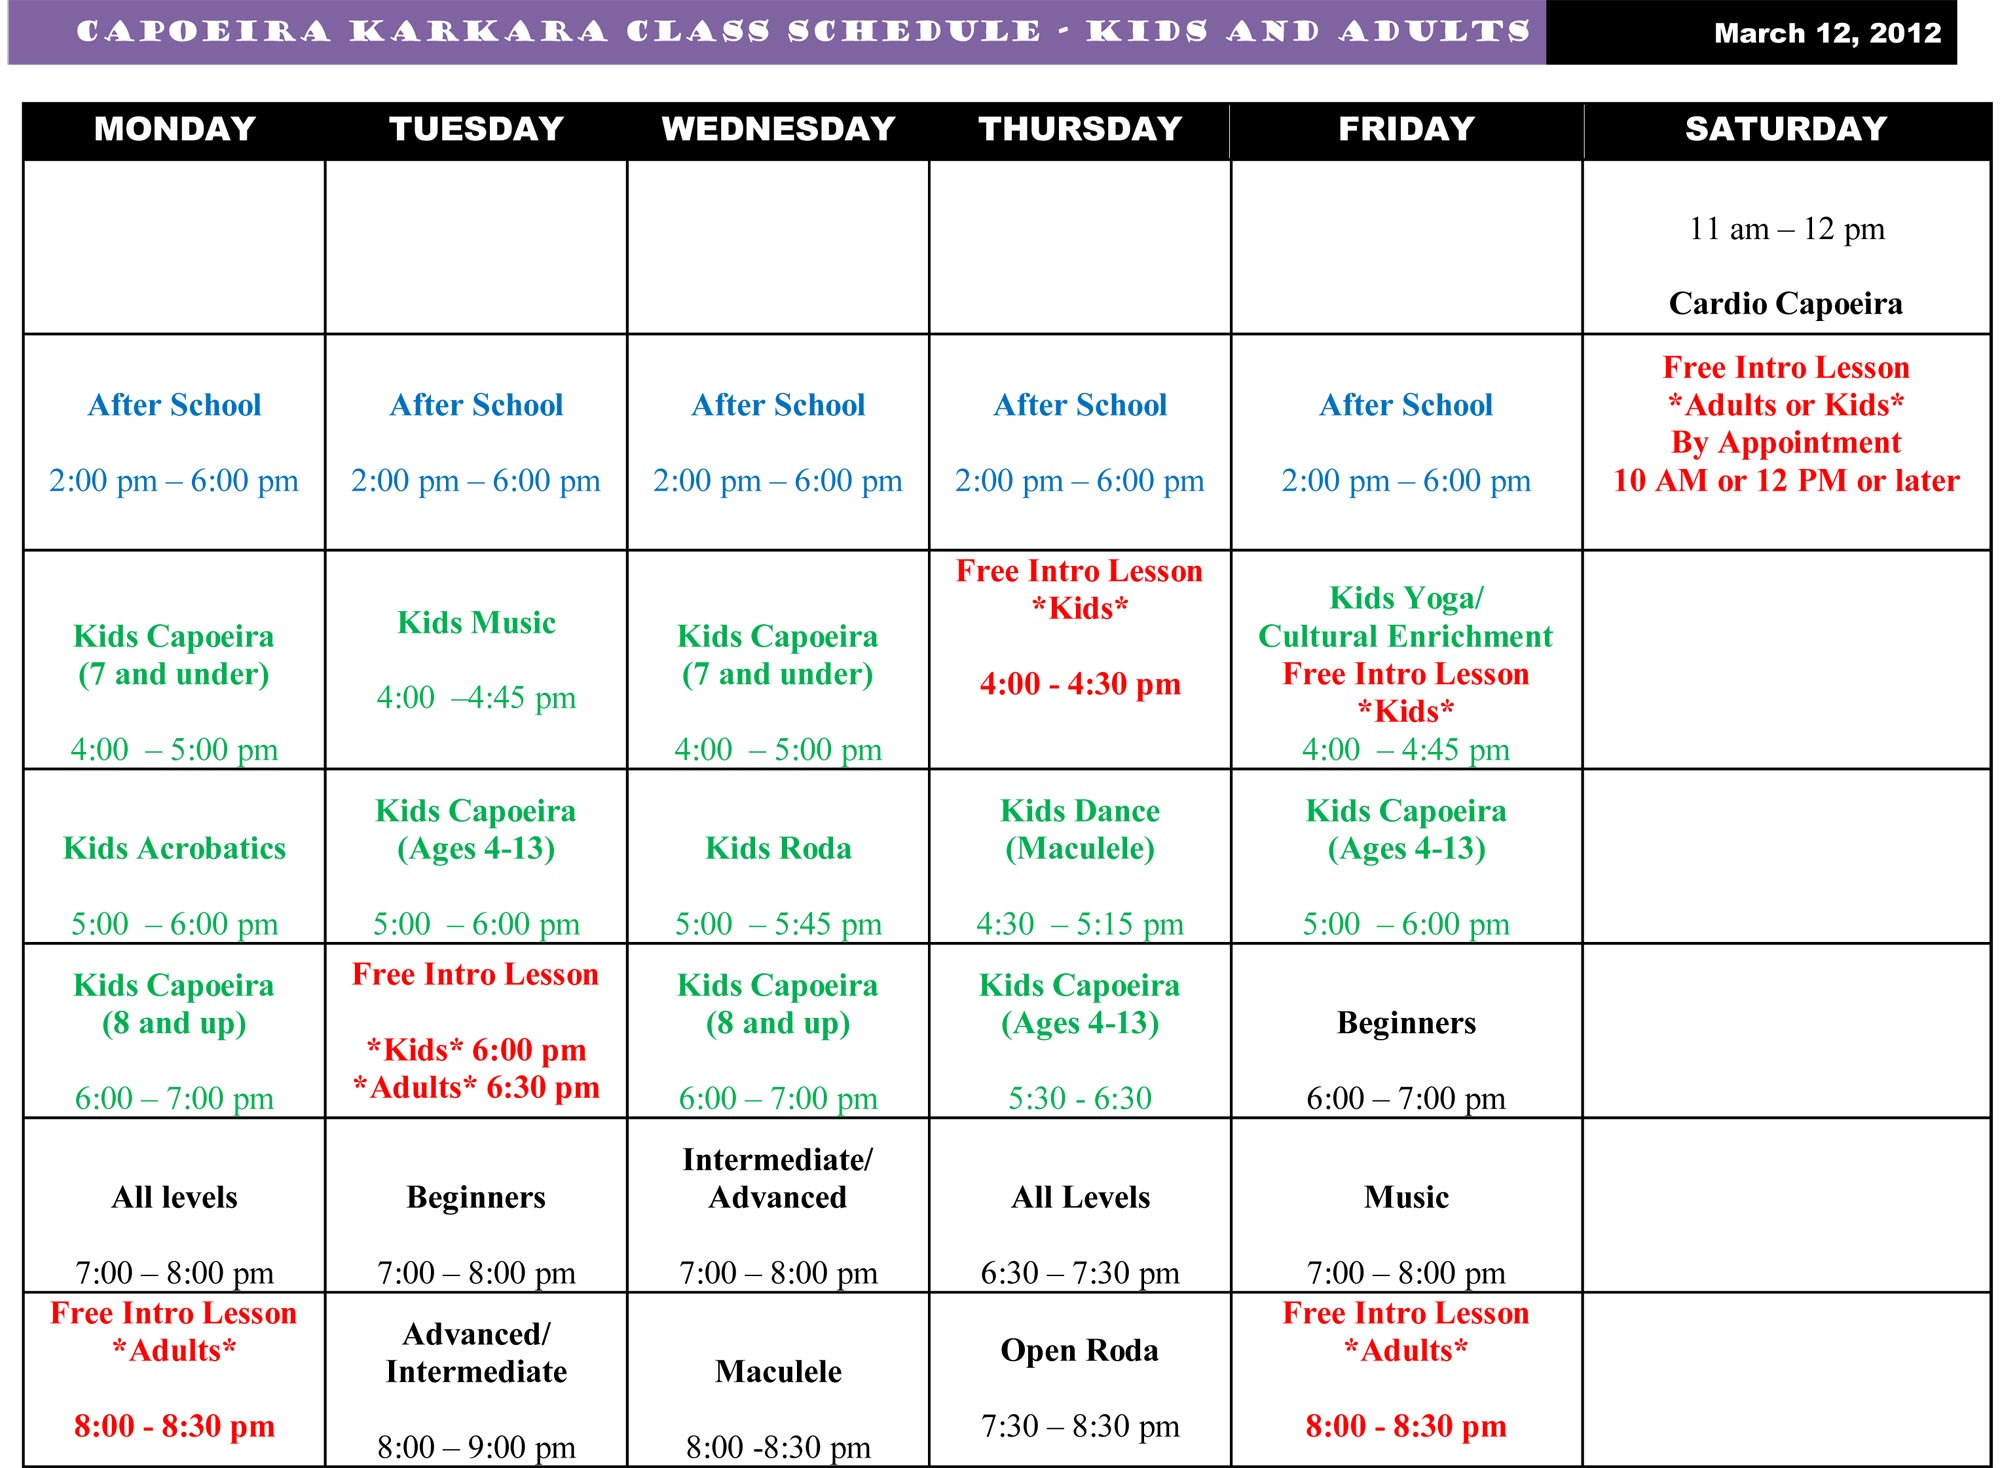 Class Schedule Capoeira Karkara Kids and Adults